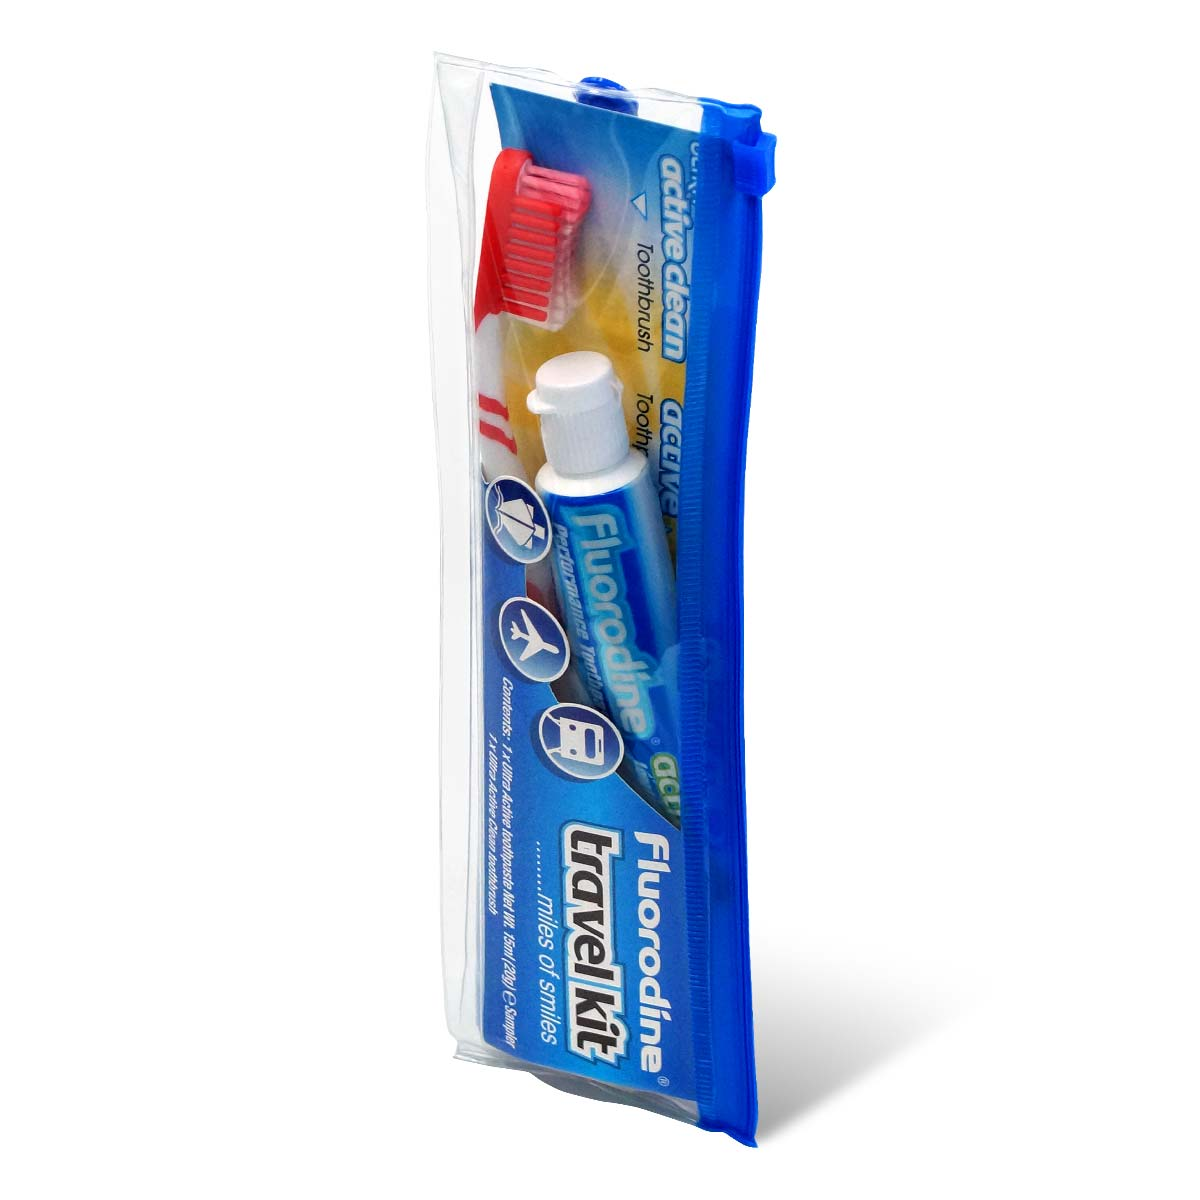 Fluorodine travel kit toothbrush & toothpaste